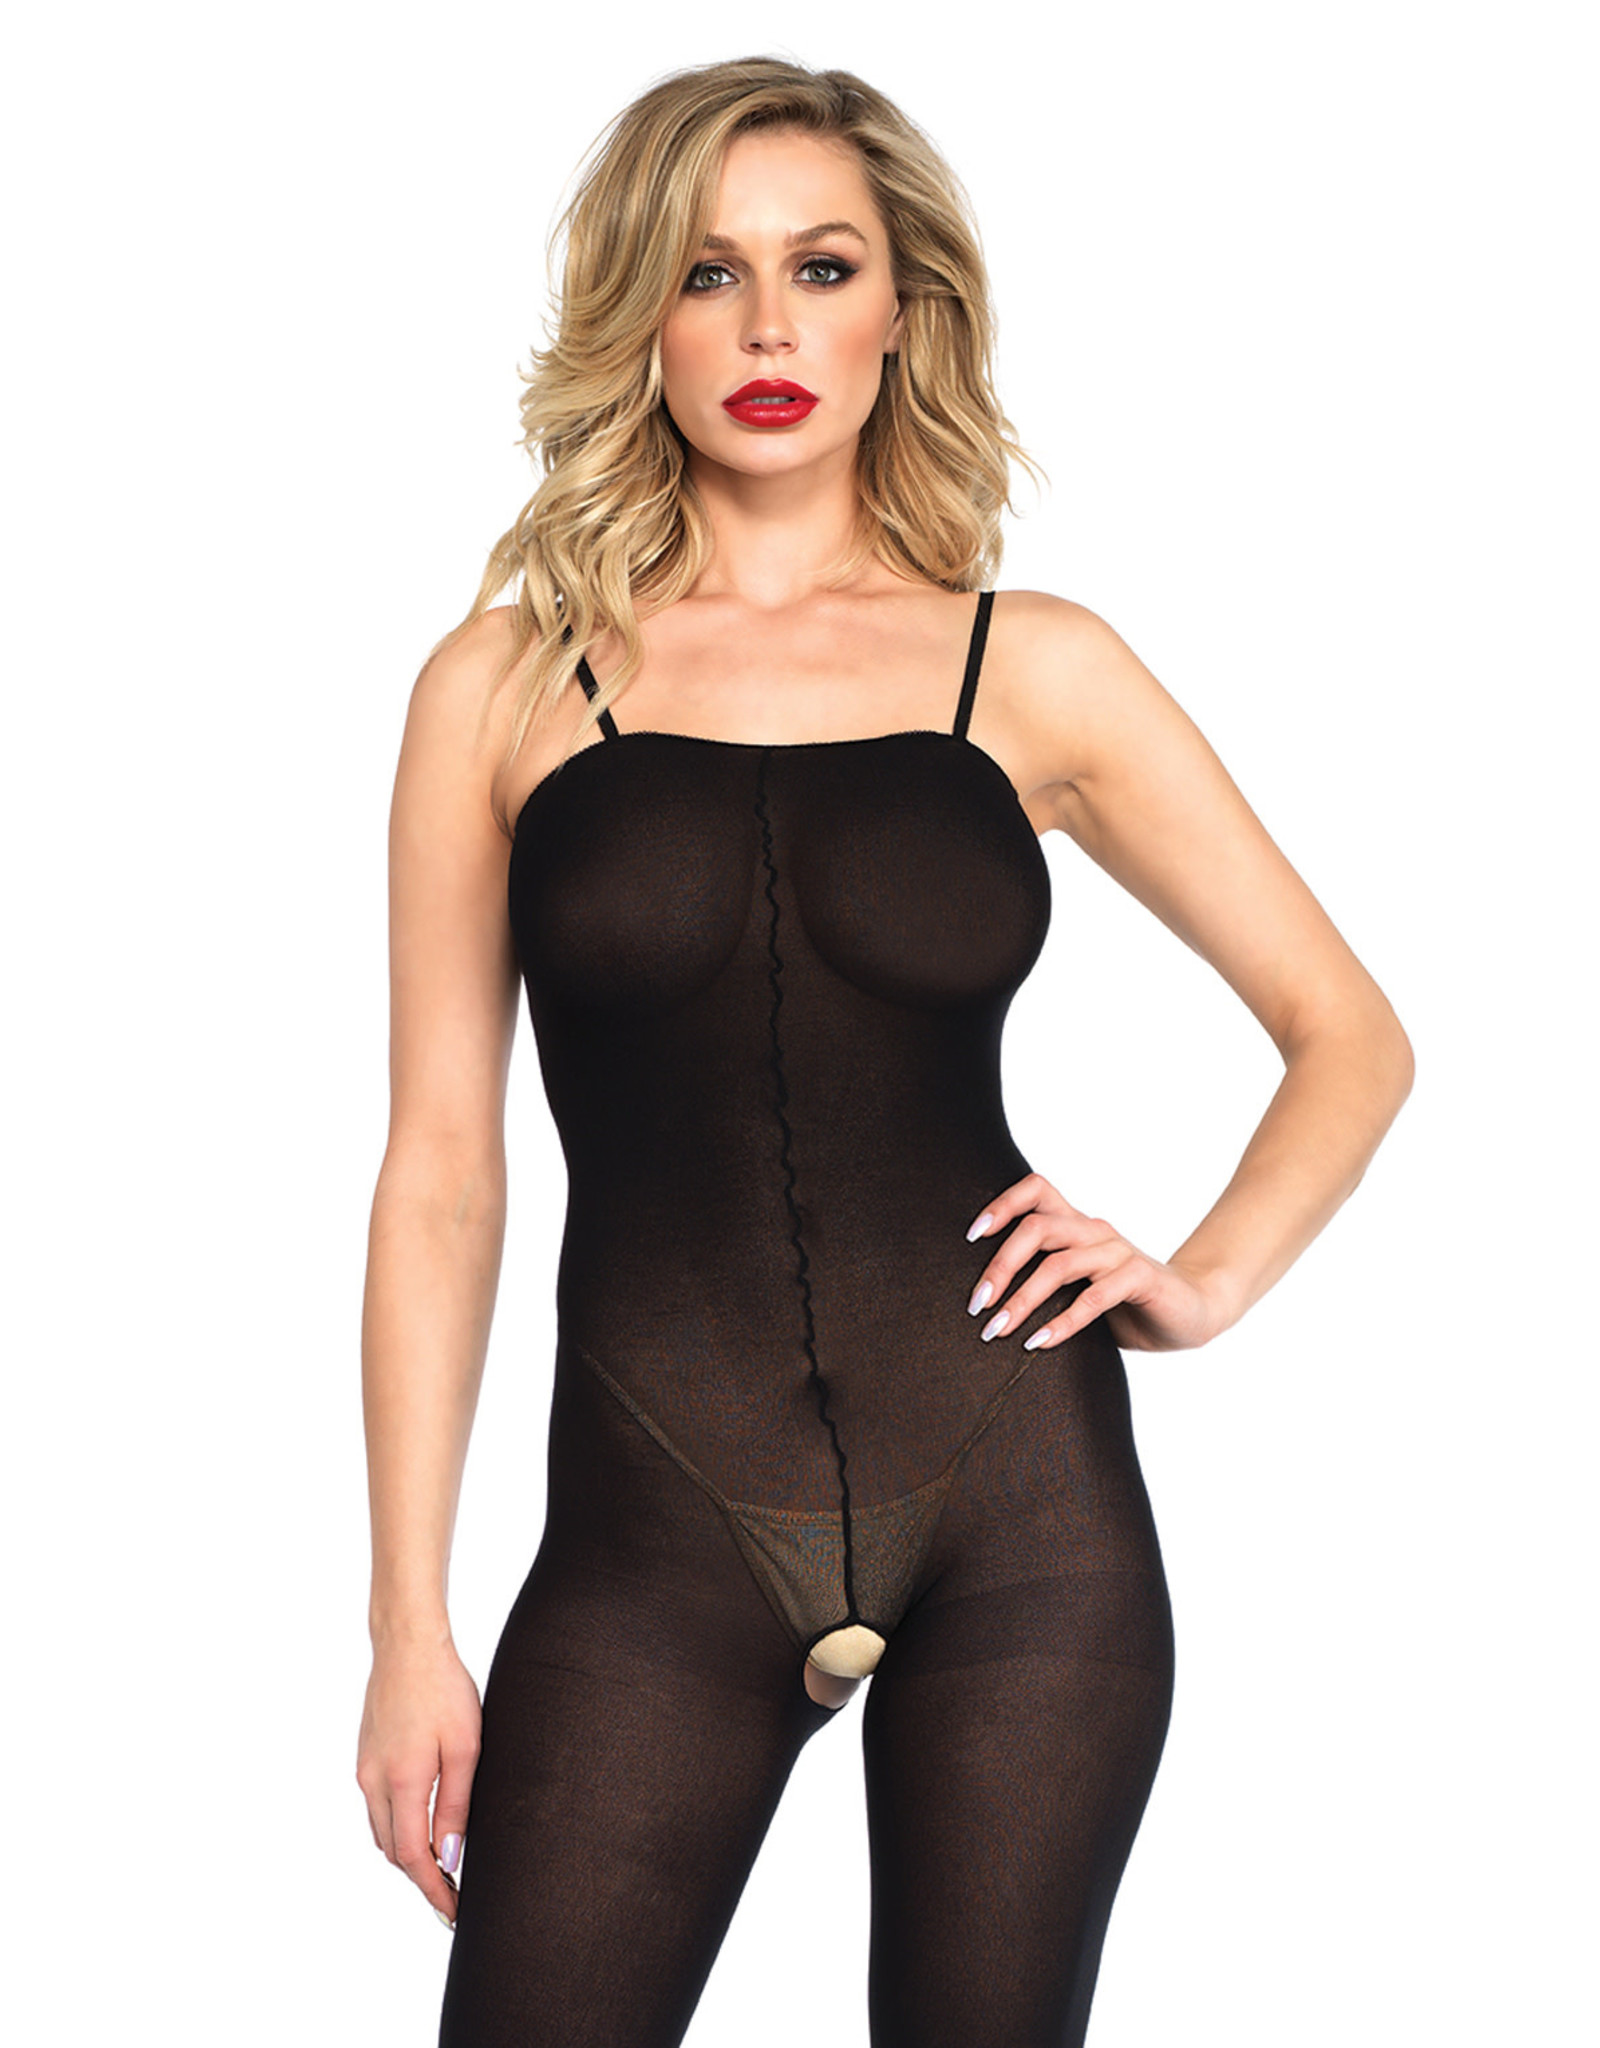 LEG AVENUE OPAQUE BODYSTOCKING WITH SPAGHETTI STRAPS